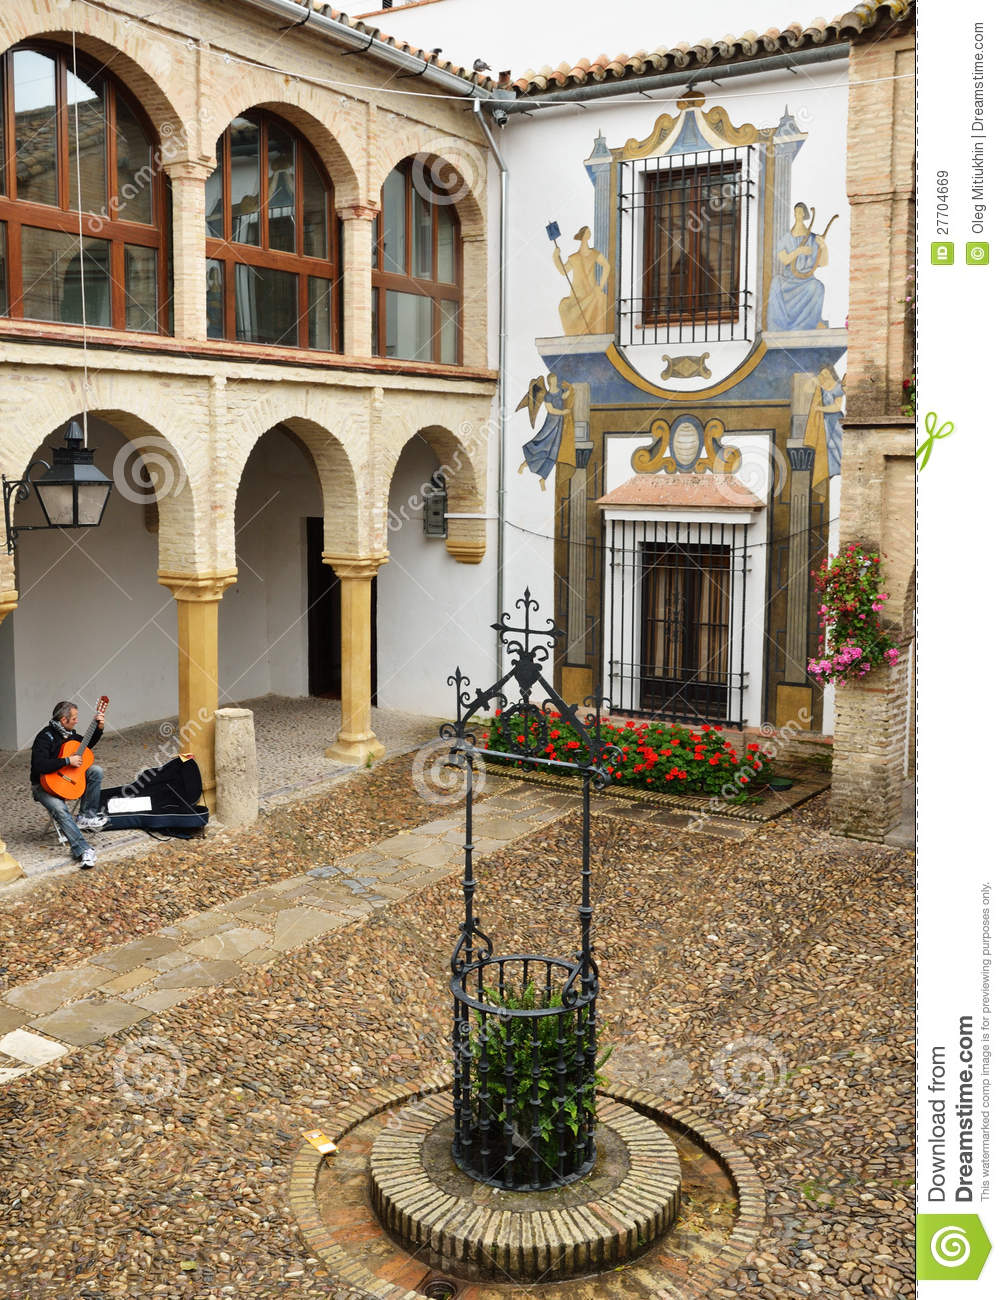 Patio of the ancient spanish house editorial stock image - Maison style colonial bois ...